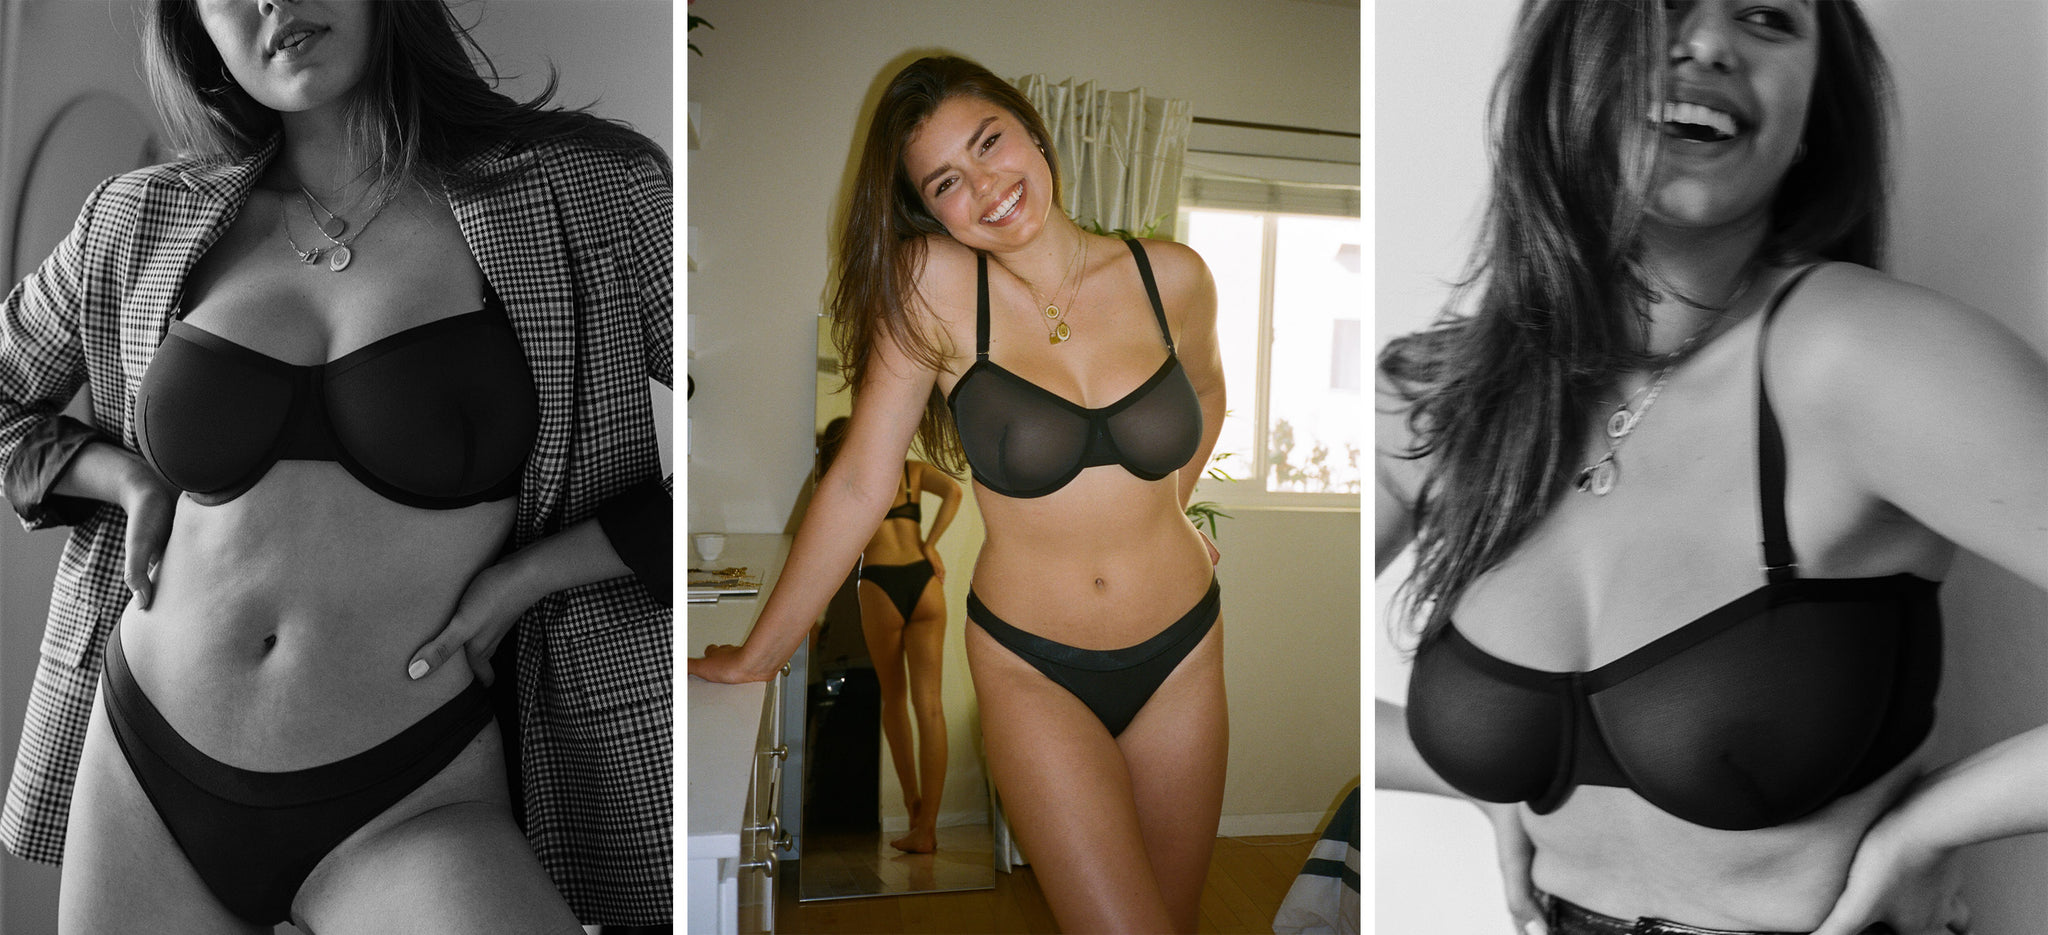 Lauren Searle Is Happiest When She's Being Herself